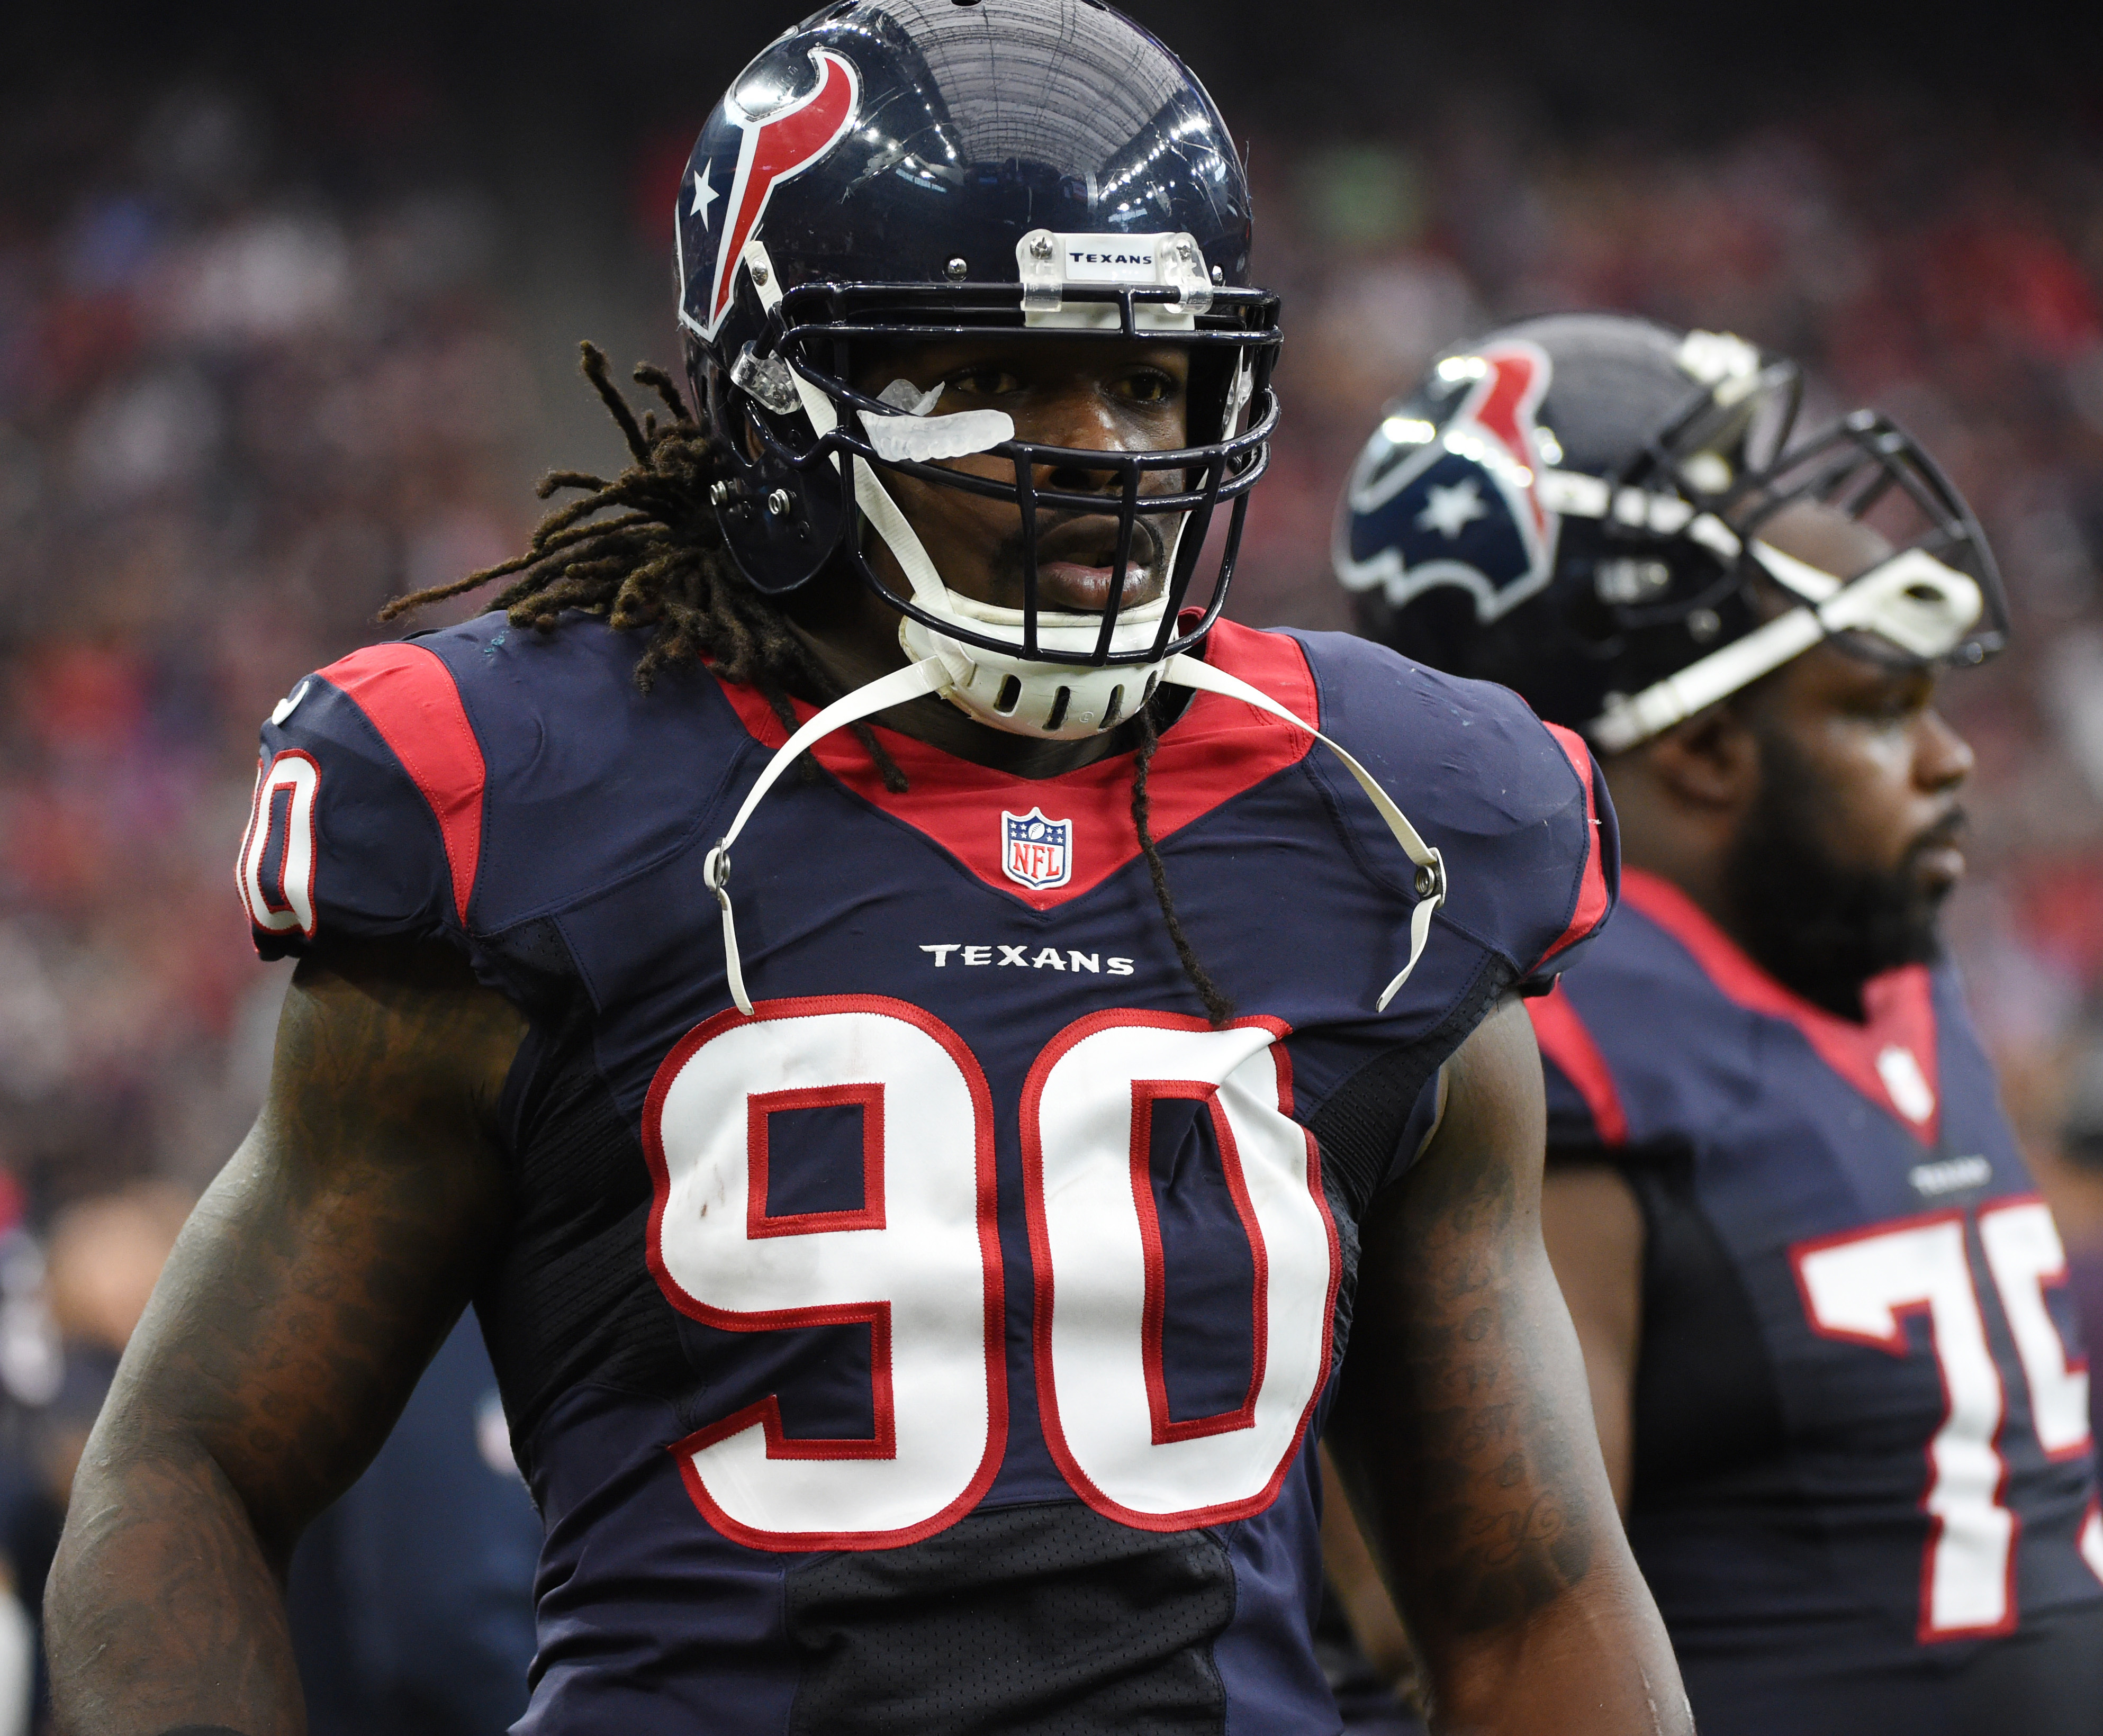 FILE - In this Nov. 1, 2015, file photo, Houston Texans outside linebacker Jadeveon Clowney (90) is shown during the first half of an NFL football game in Houston. Clowney failed to make an impact in his first two injury-plagued NFL seasons. Now the top o